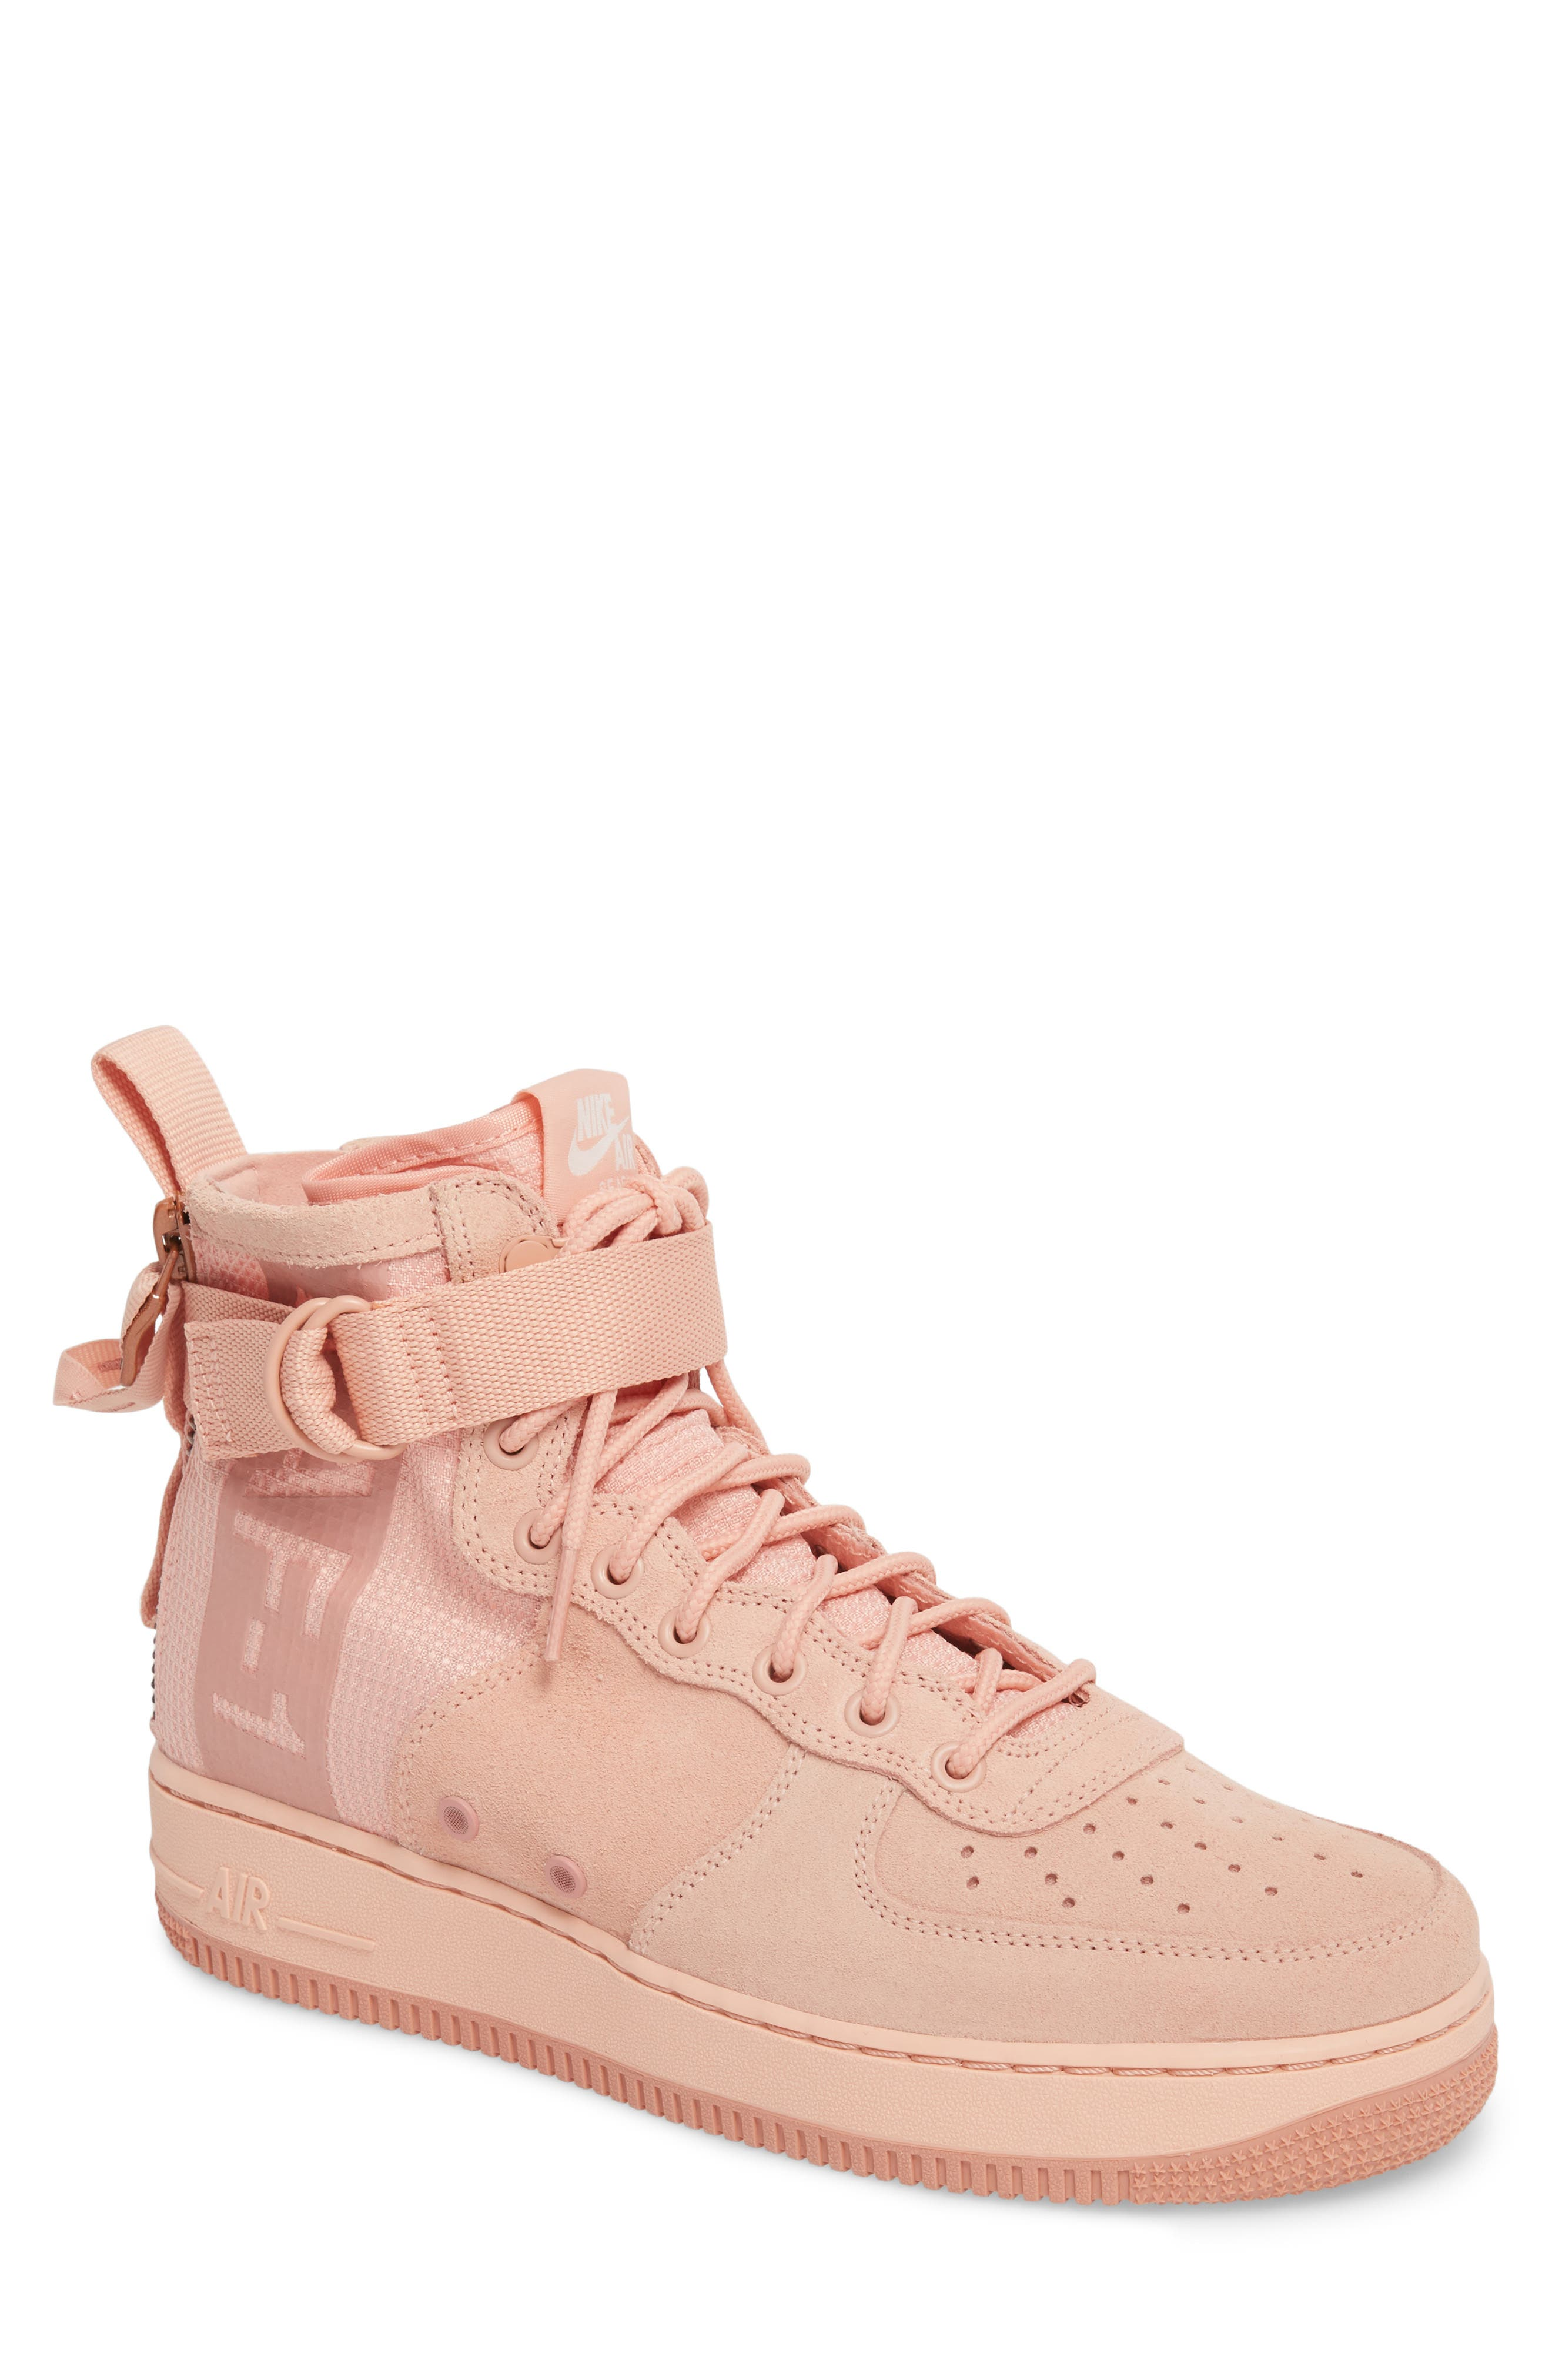 SF Air Force 1 Mid Suede Sneaker,                         Main,                         color, Coral Stardust/ Red Stardust